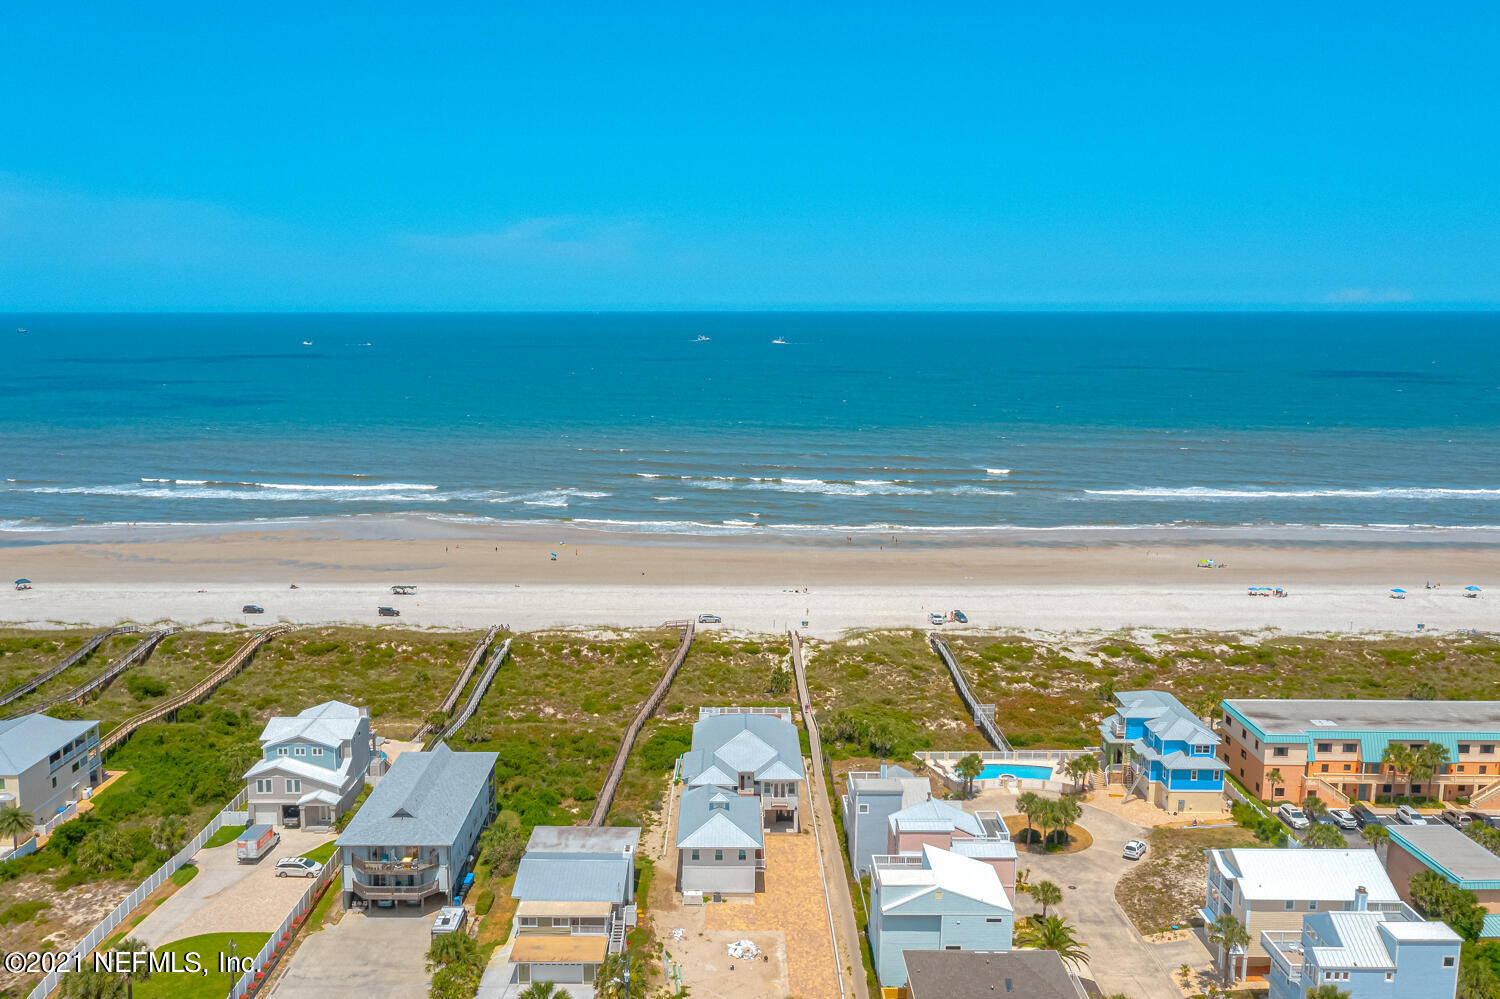 Beautiful panorama direct ocean front pool home on St Augustine Beach.  Gorgeous home features 7 bedrooms and 5 bathrooms. This home is equipped with an elevator. The home has oversize gathering room with a gas fireplace. Home features wood flooring, with the most upgraded lighting throughout the home. Picturesque kitchen with grand island/granite counter tops. A sub-zero refrigerator integrated within cabinetry.  Gas range with downdraft, dishwasher, spacious pantry and wet bar area. Formal dining room overlooking the ocean. The home features laundry room and full bathroom downstairs. Gorgeous staircase leading up to spacious family room/bedroom. Owner suite has ocean front view with fireplace. Ensuite has oversize closet (16x8) double shower with two entries.